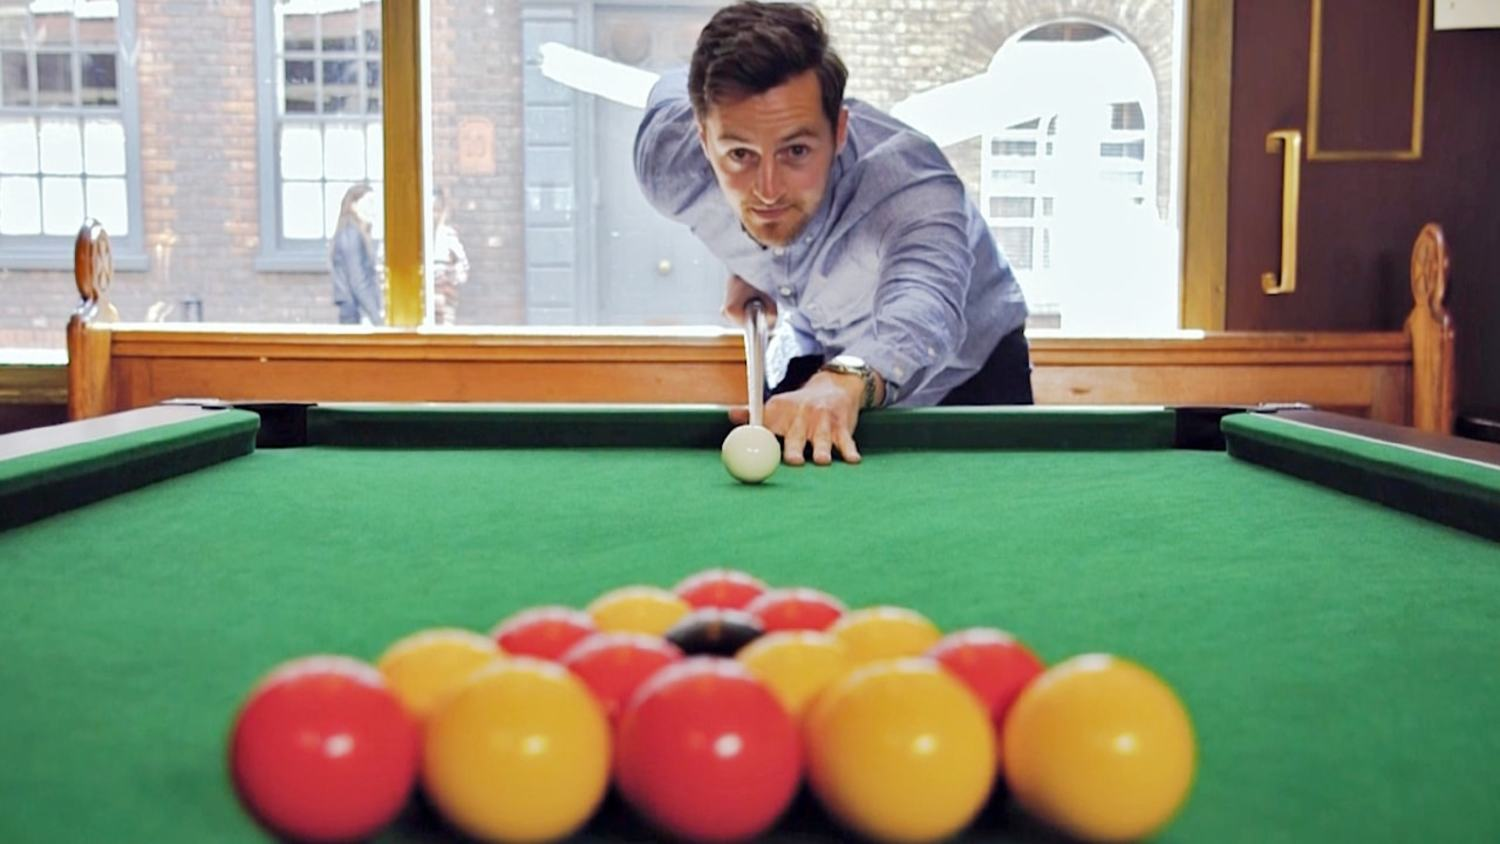 Pool with Ryan Mason - Footballers Are People Too